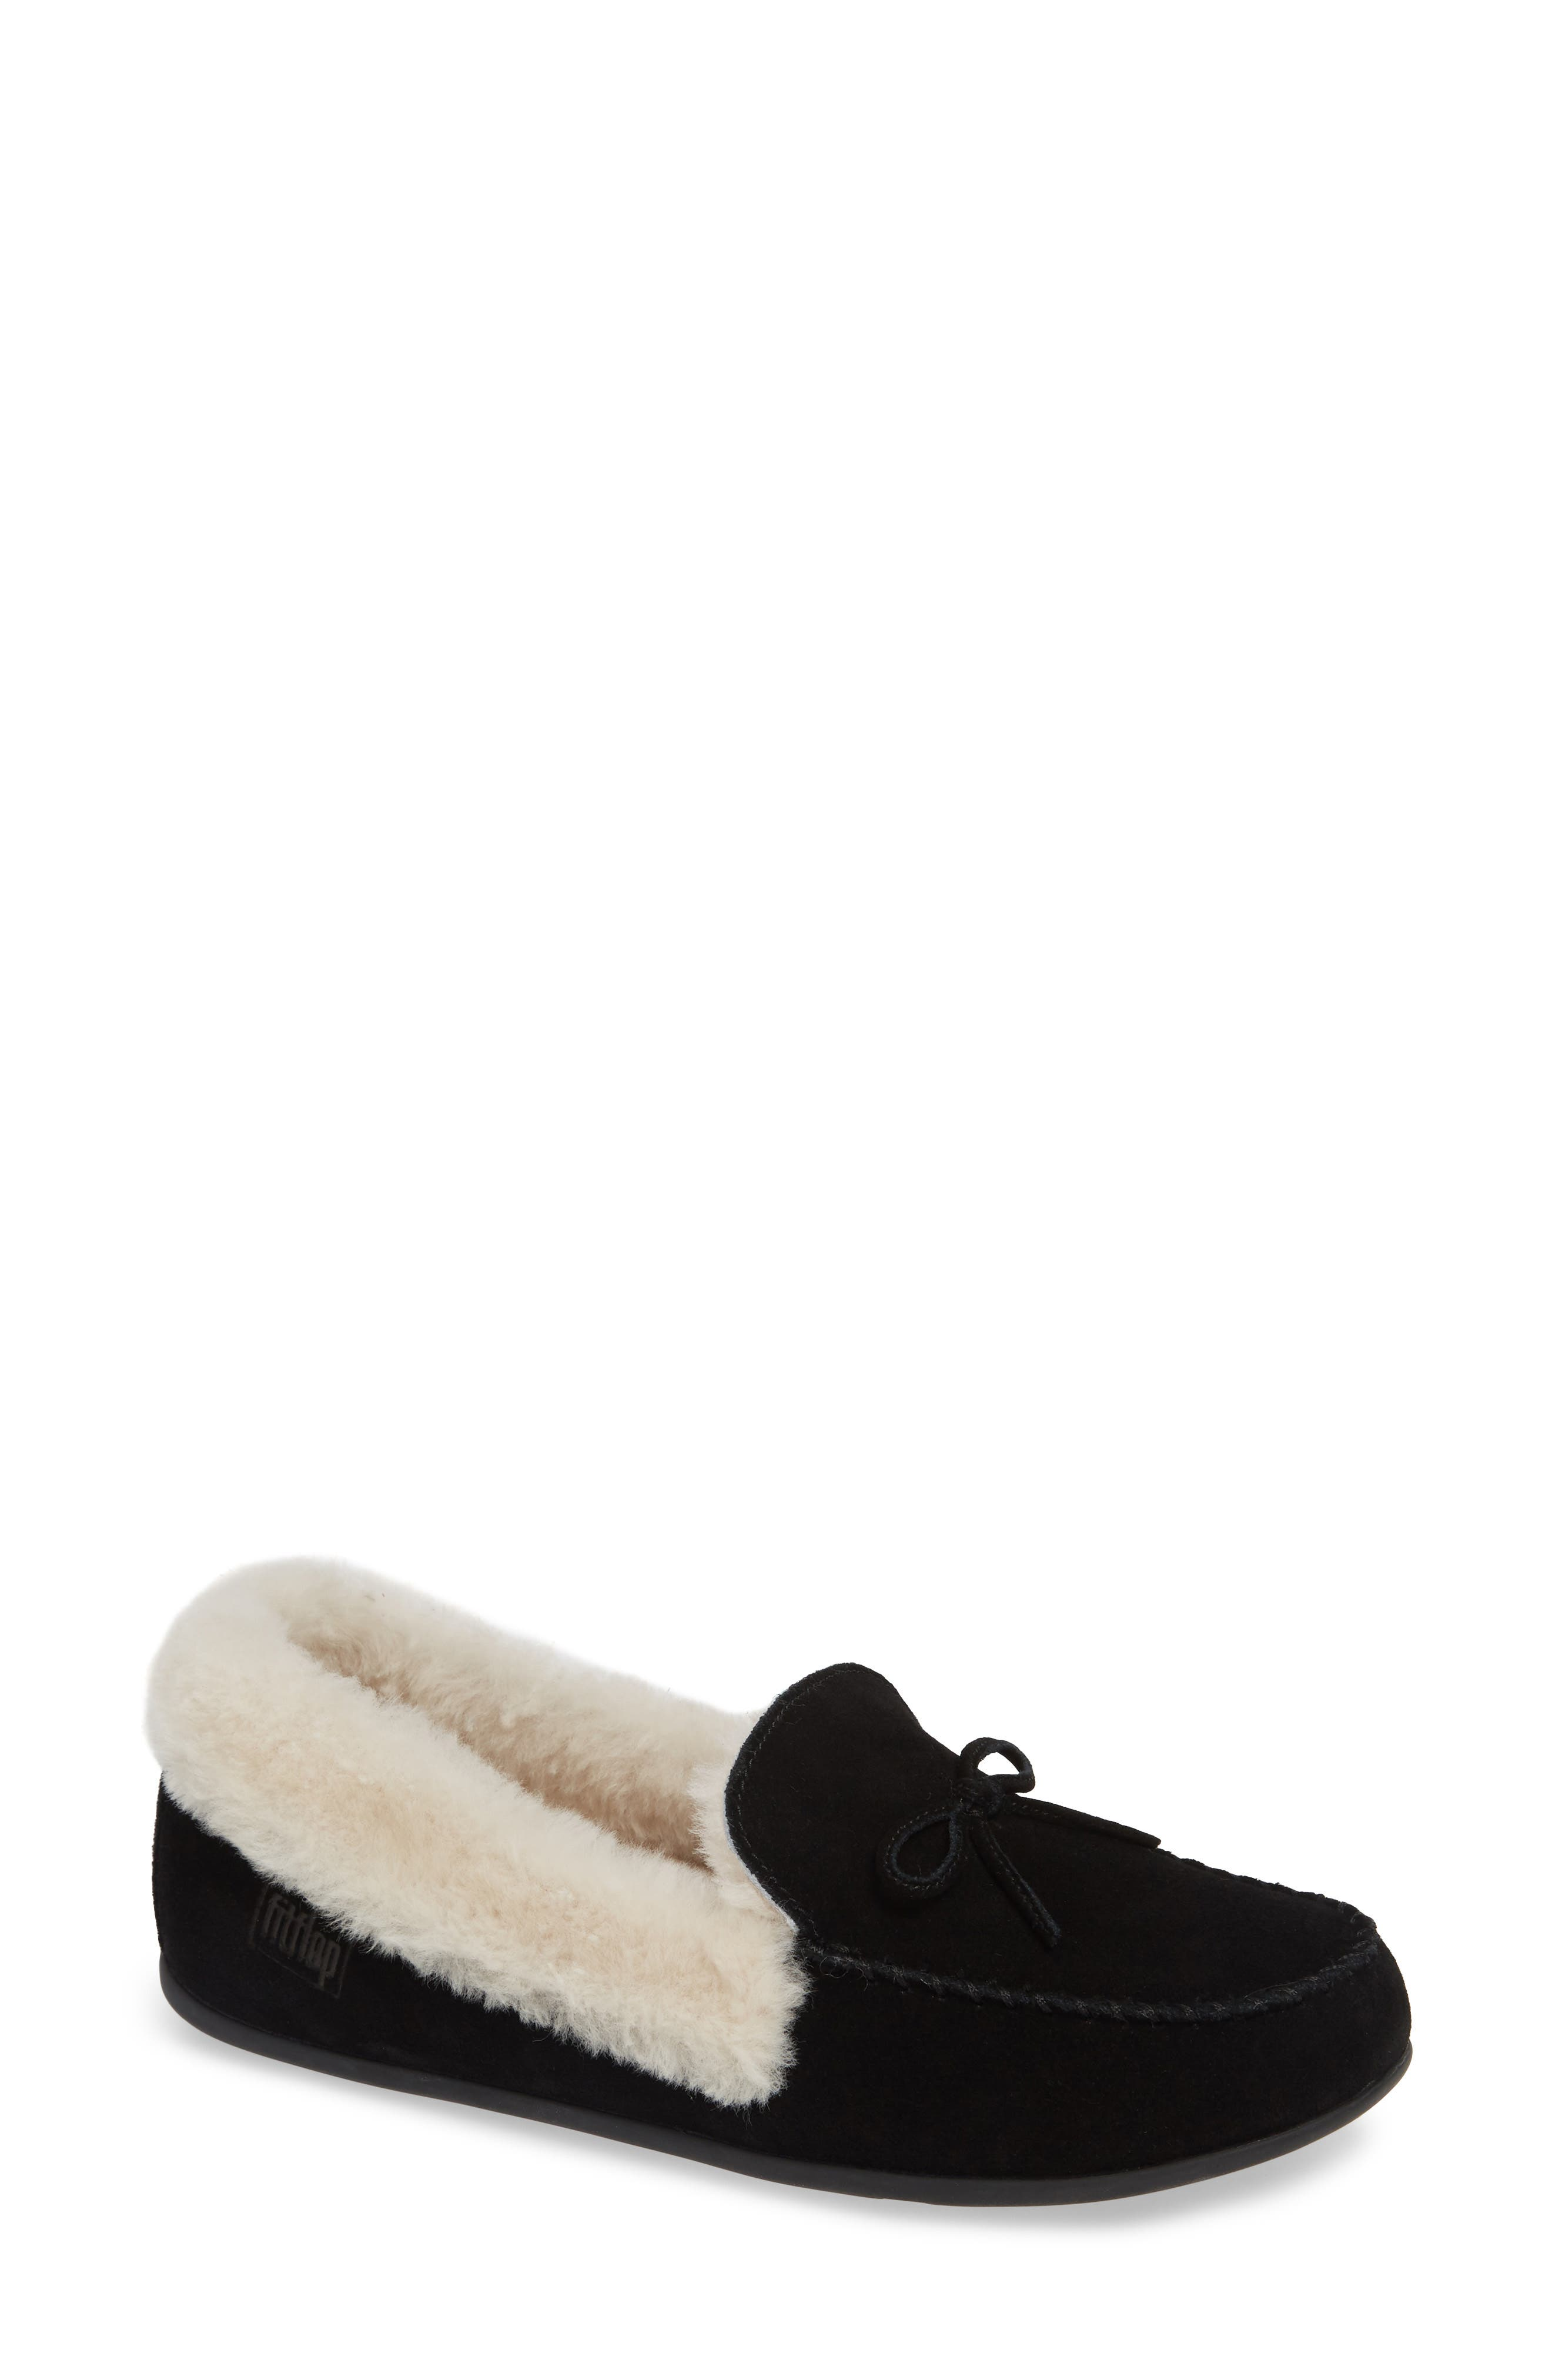 Clara Genuine Shearling Lined Moccasin,                         Main,                         color, BLACK SUEDE